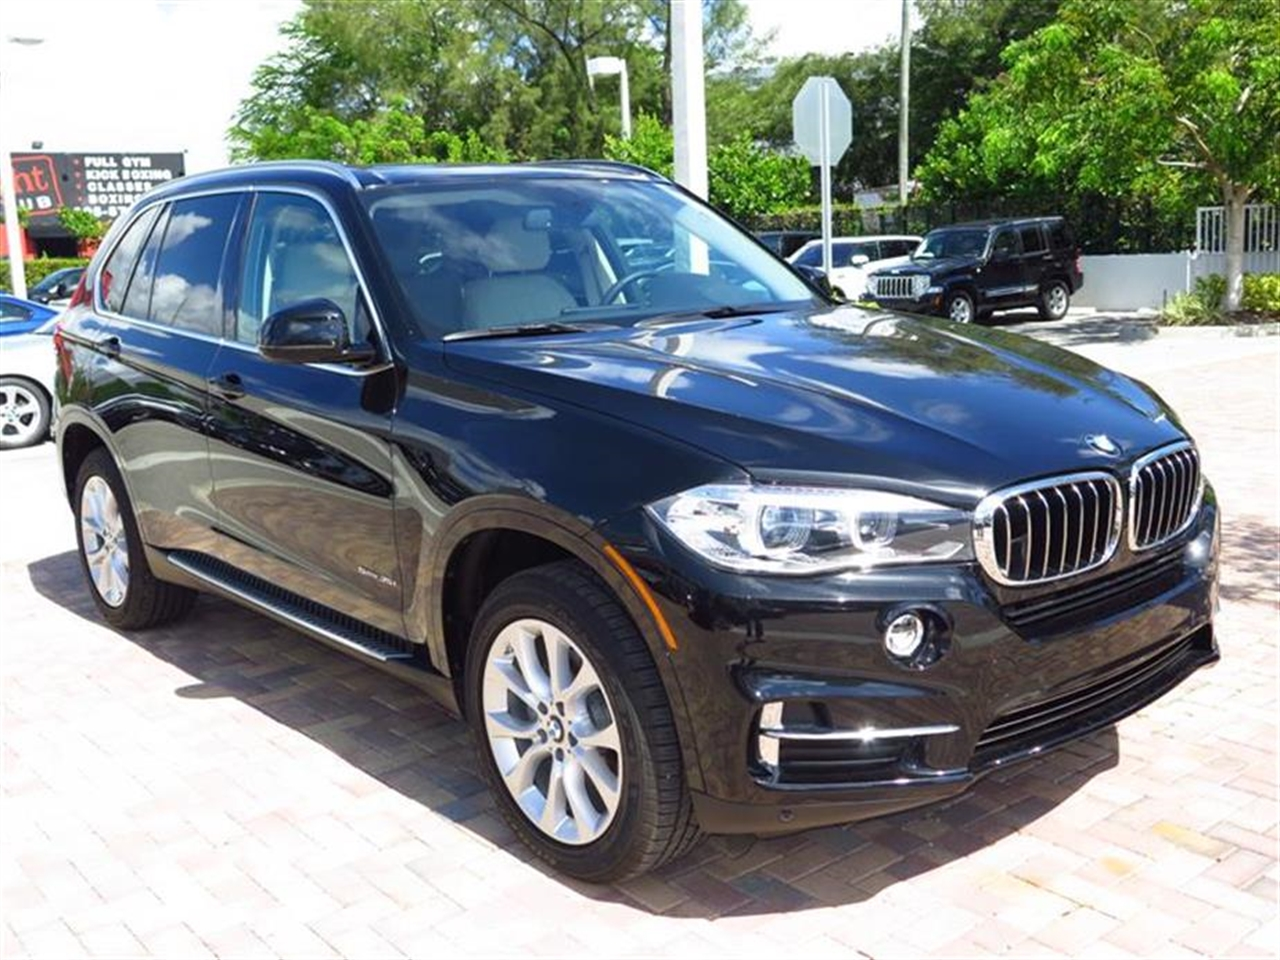 2014 BMW X5 RWD 4dr sDrive35i 6008 miles VIN 5UXKR2C51E0C01772